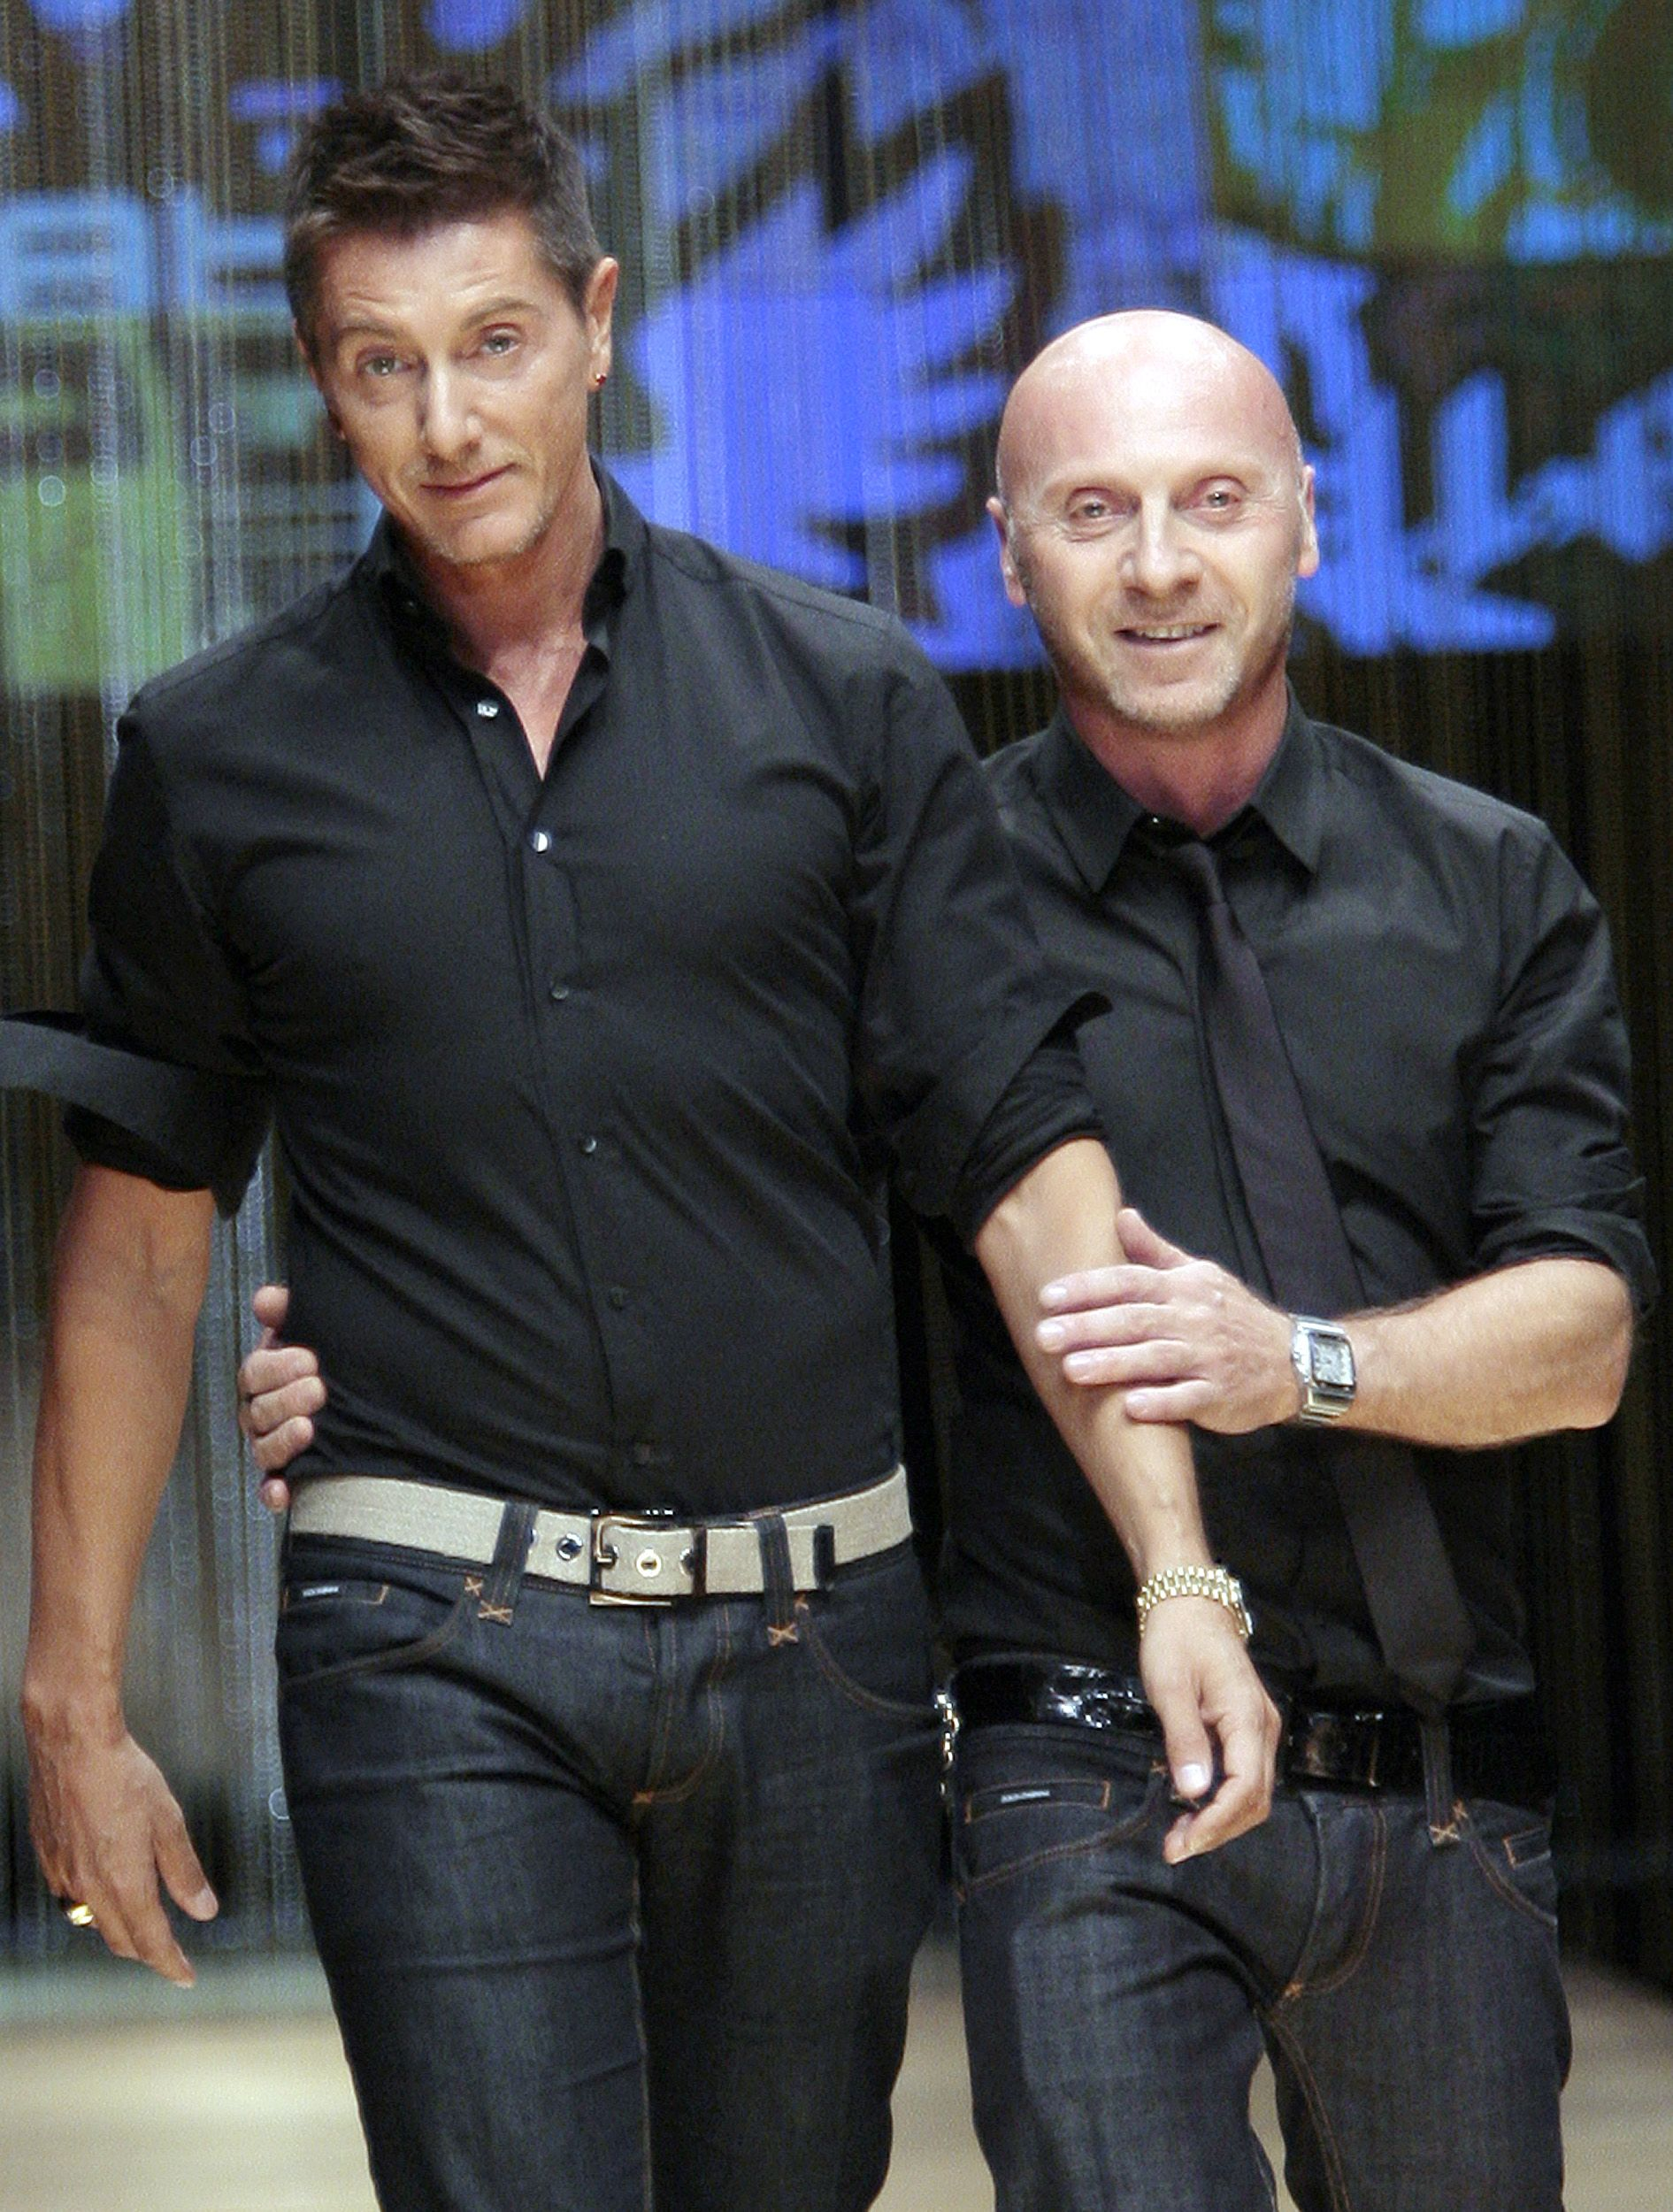 Sorry Dolce and Gabbana – but being gay does not exempt you from being a parent